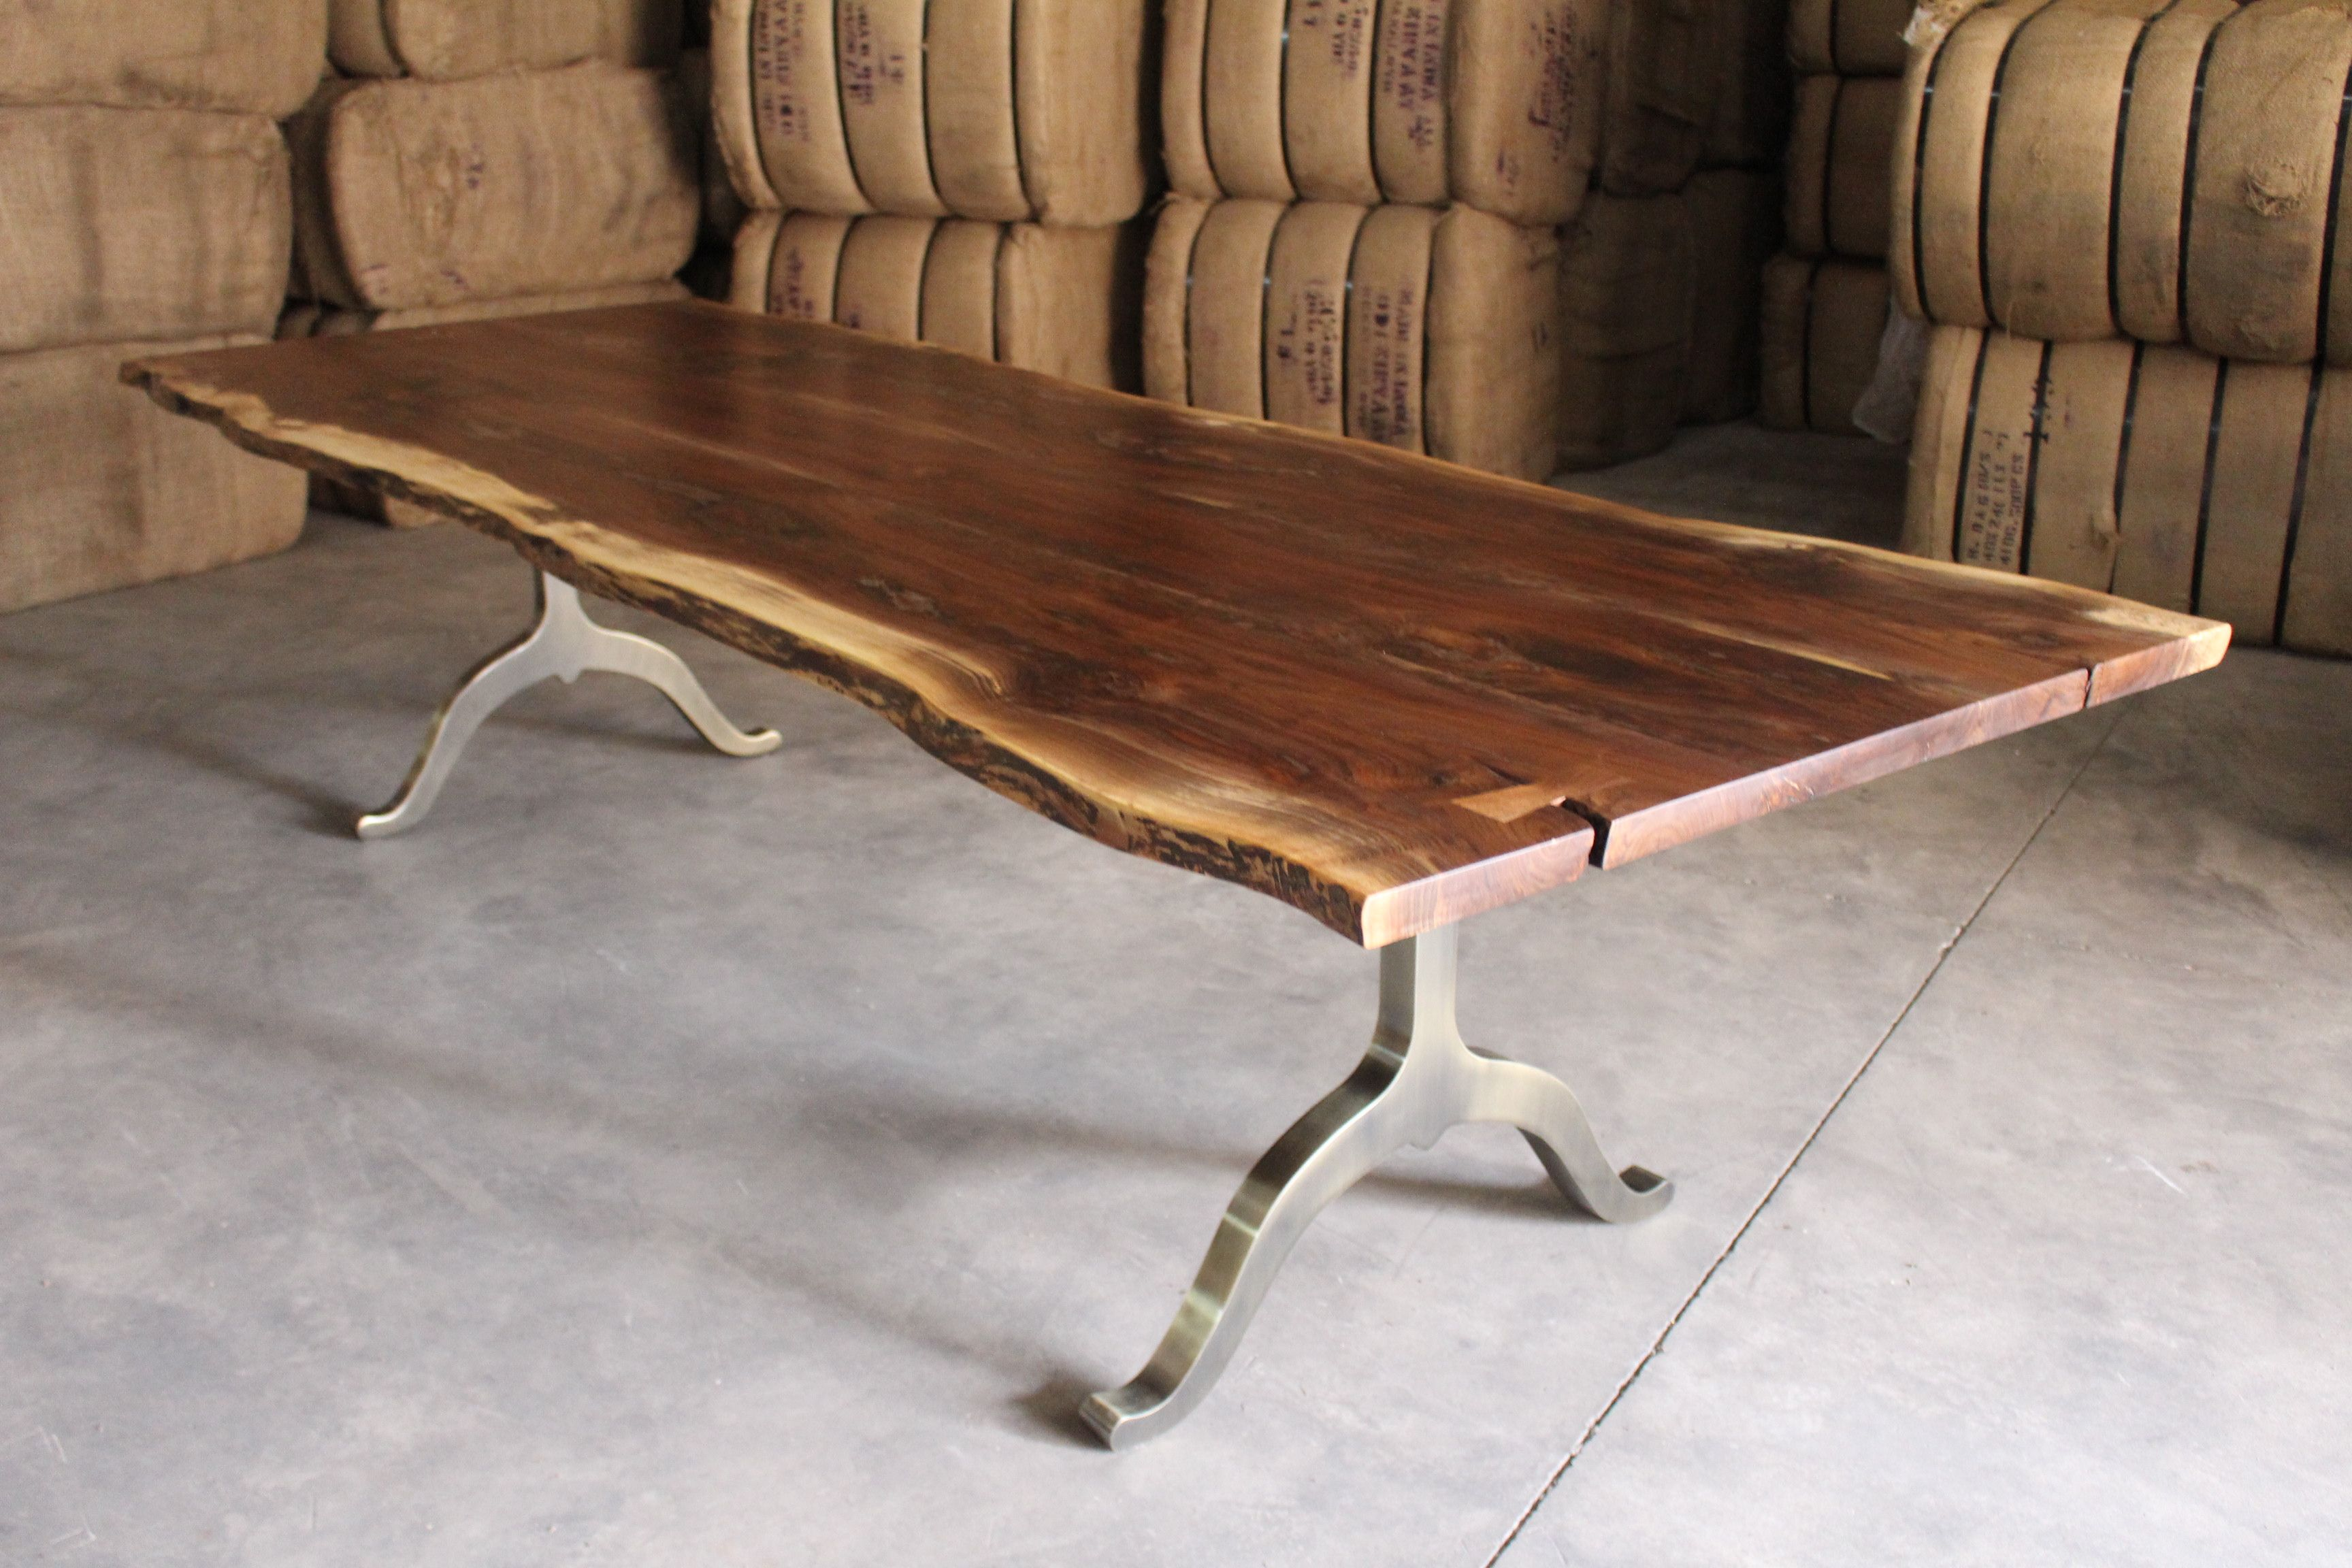 Live Edge Black Walnut Table With Antique Br Plated Base Sustainable Tables And Furniture Made From Salvaged Wood